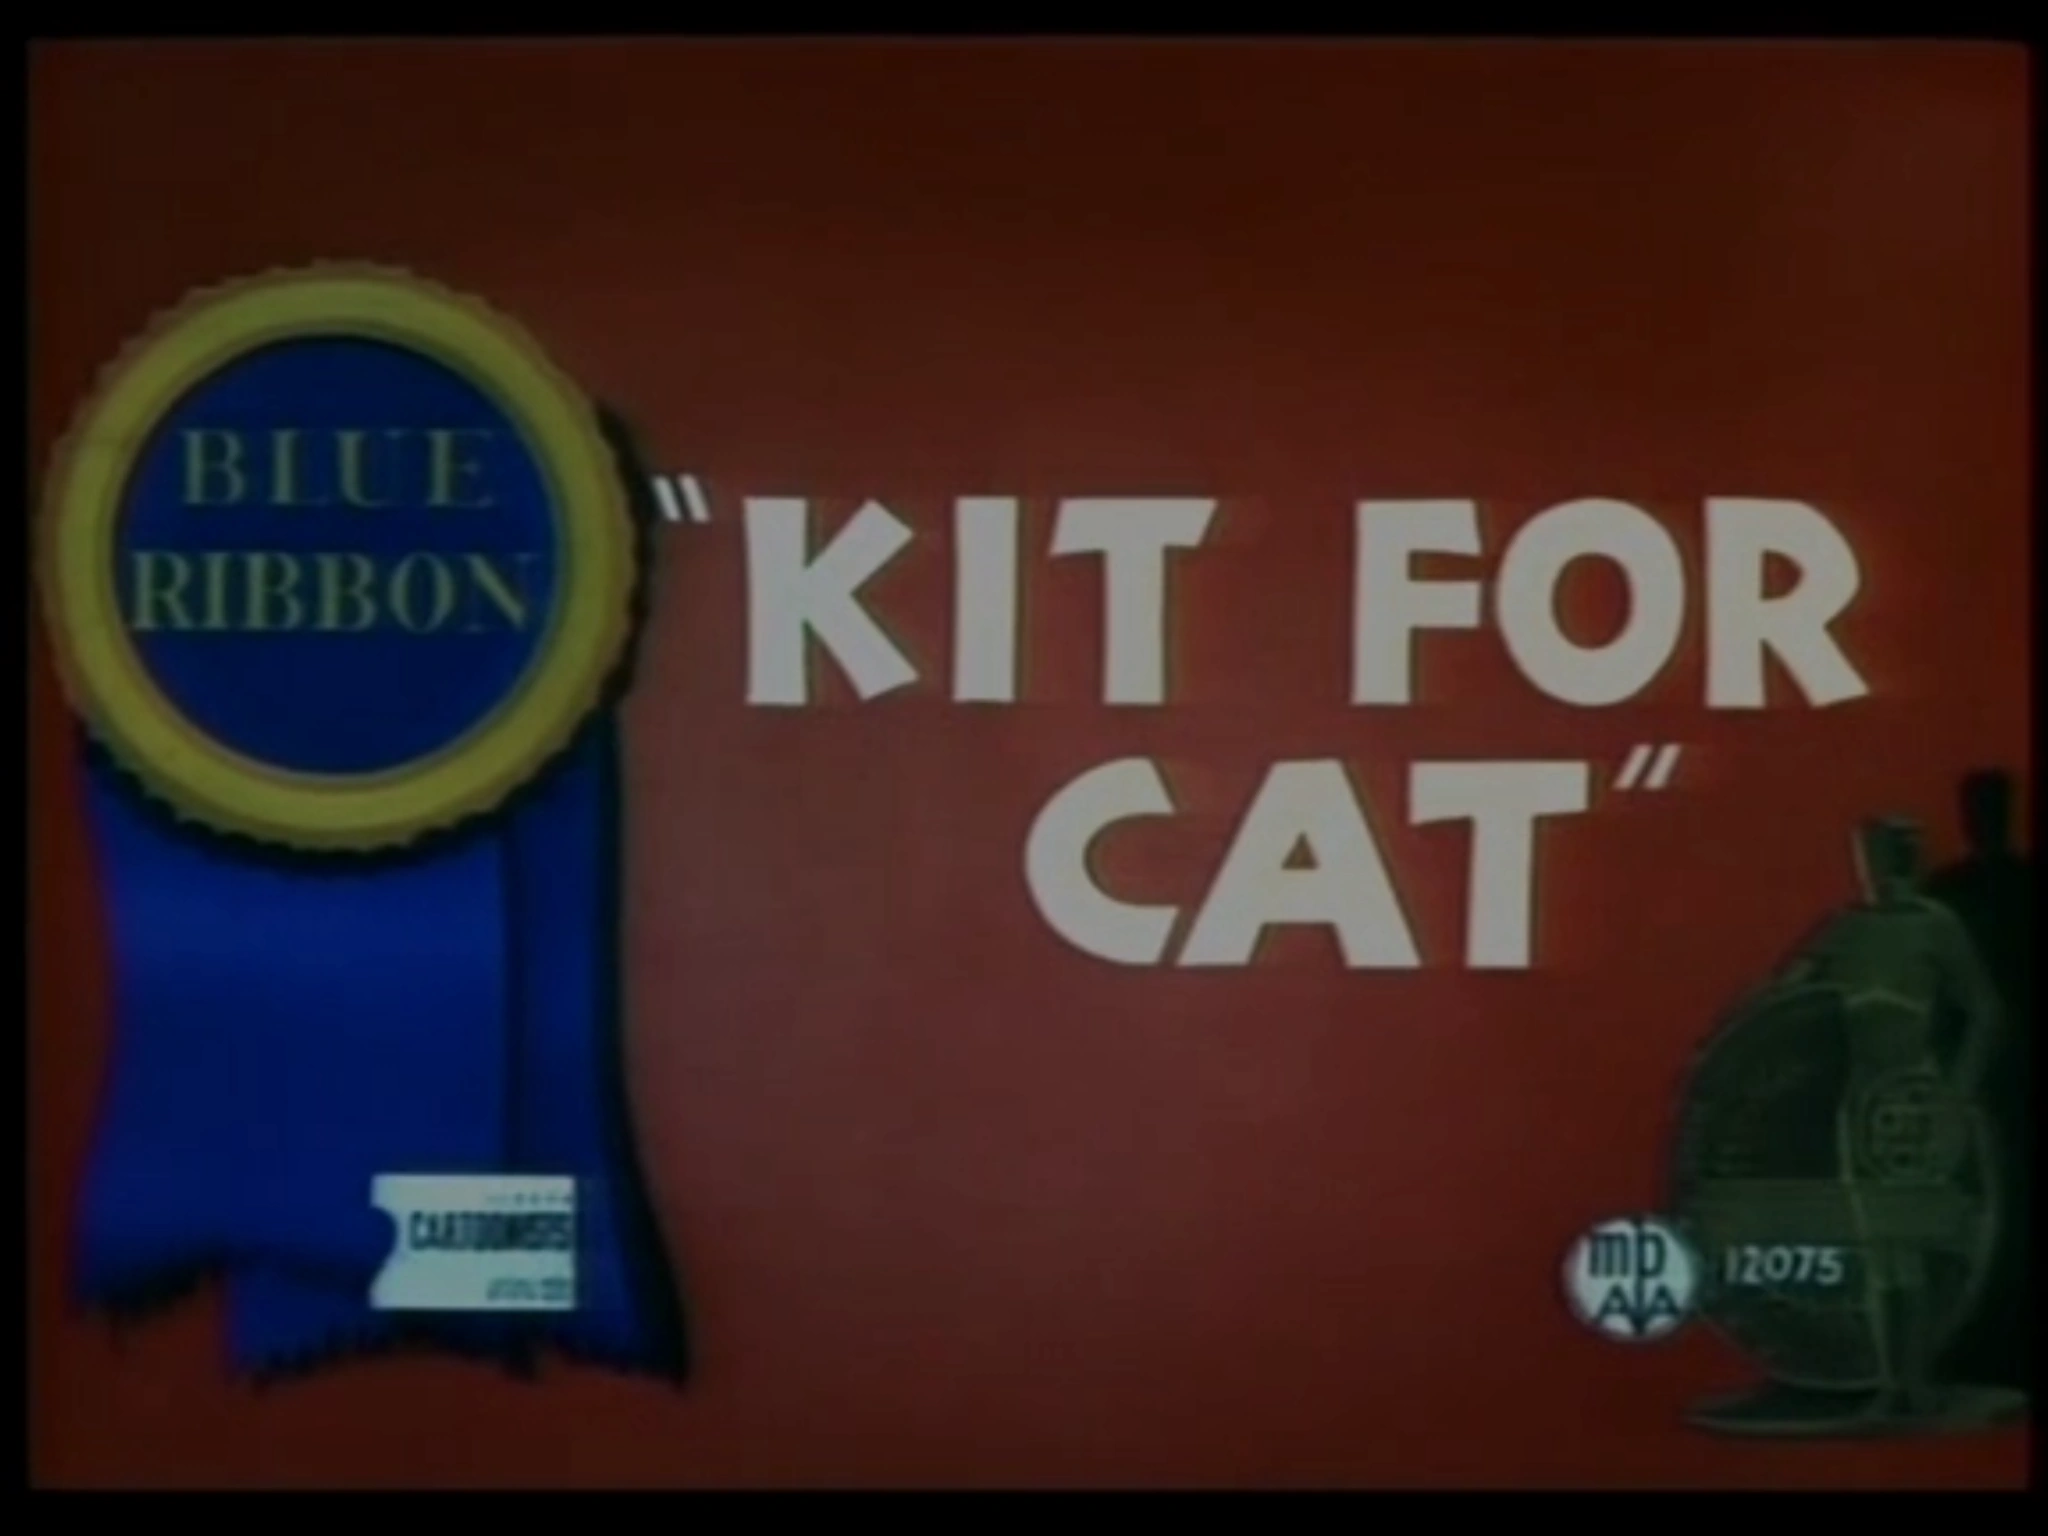 Kit for Cat